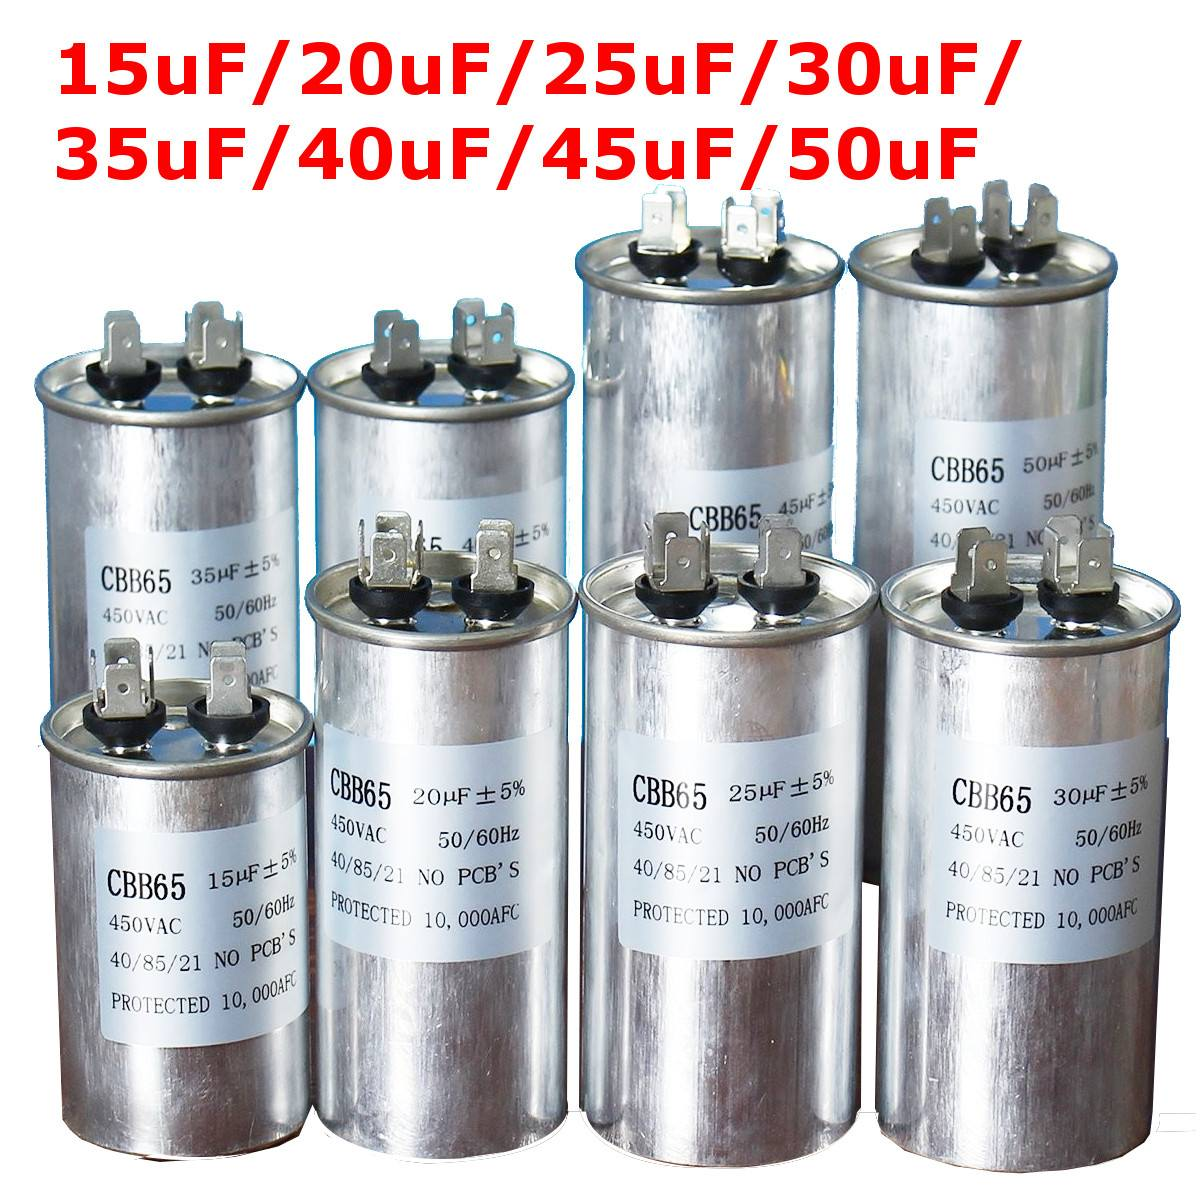 450V AC Motor Capacitor Air Conditioner Compressor Start Capacitor CBB65 15uF 20uF 25uF 30uF 35uF 40uF 45uF 50uF Air conditionin image